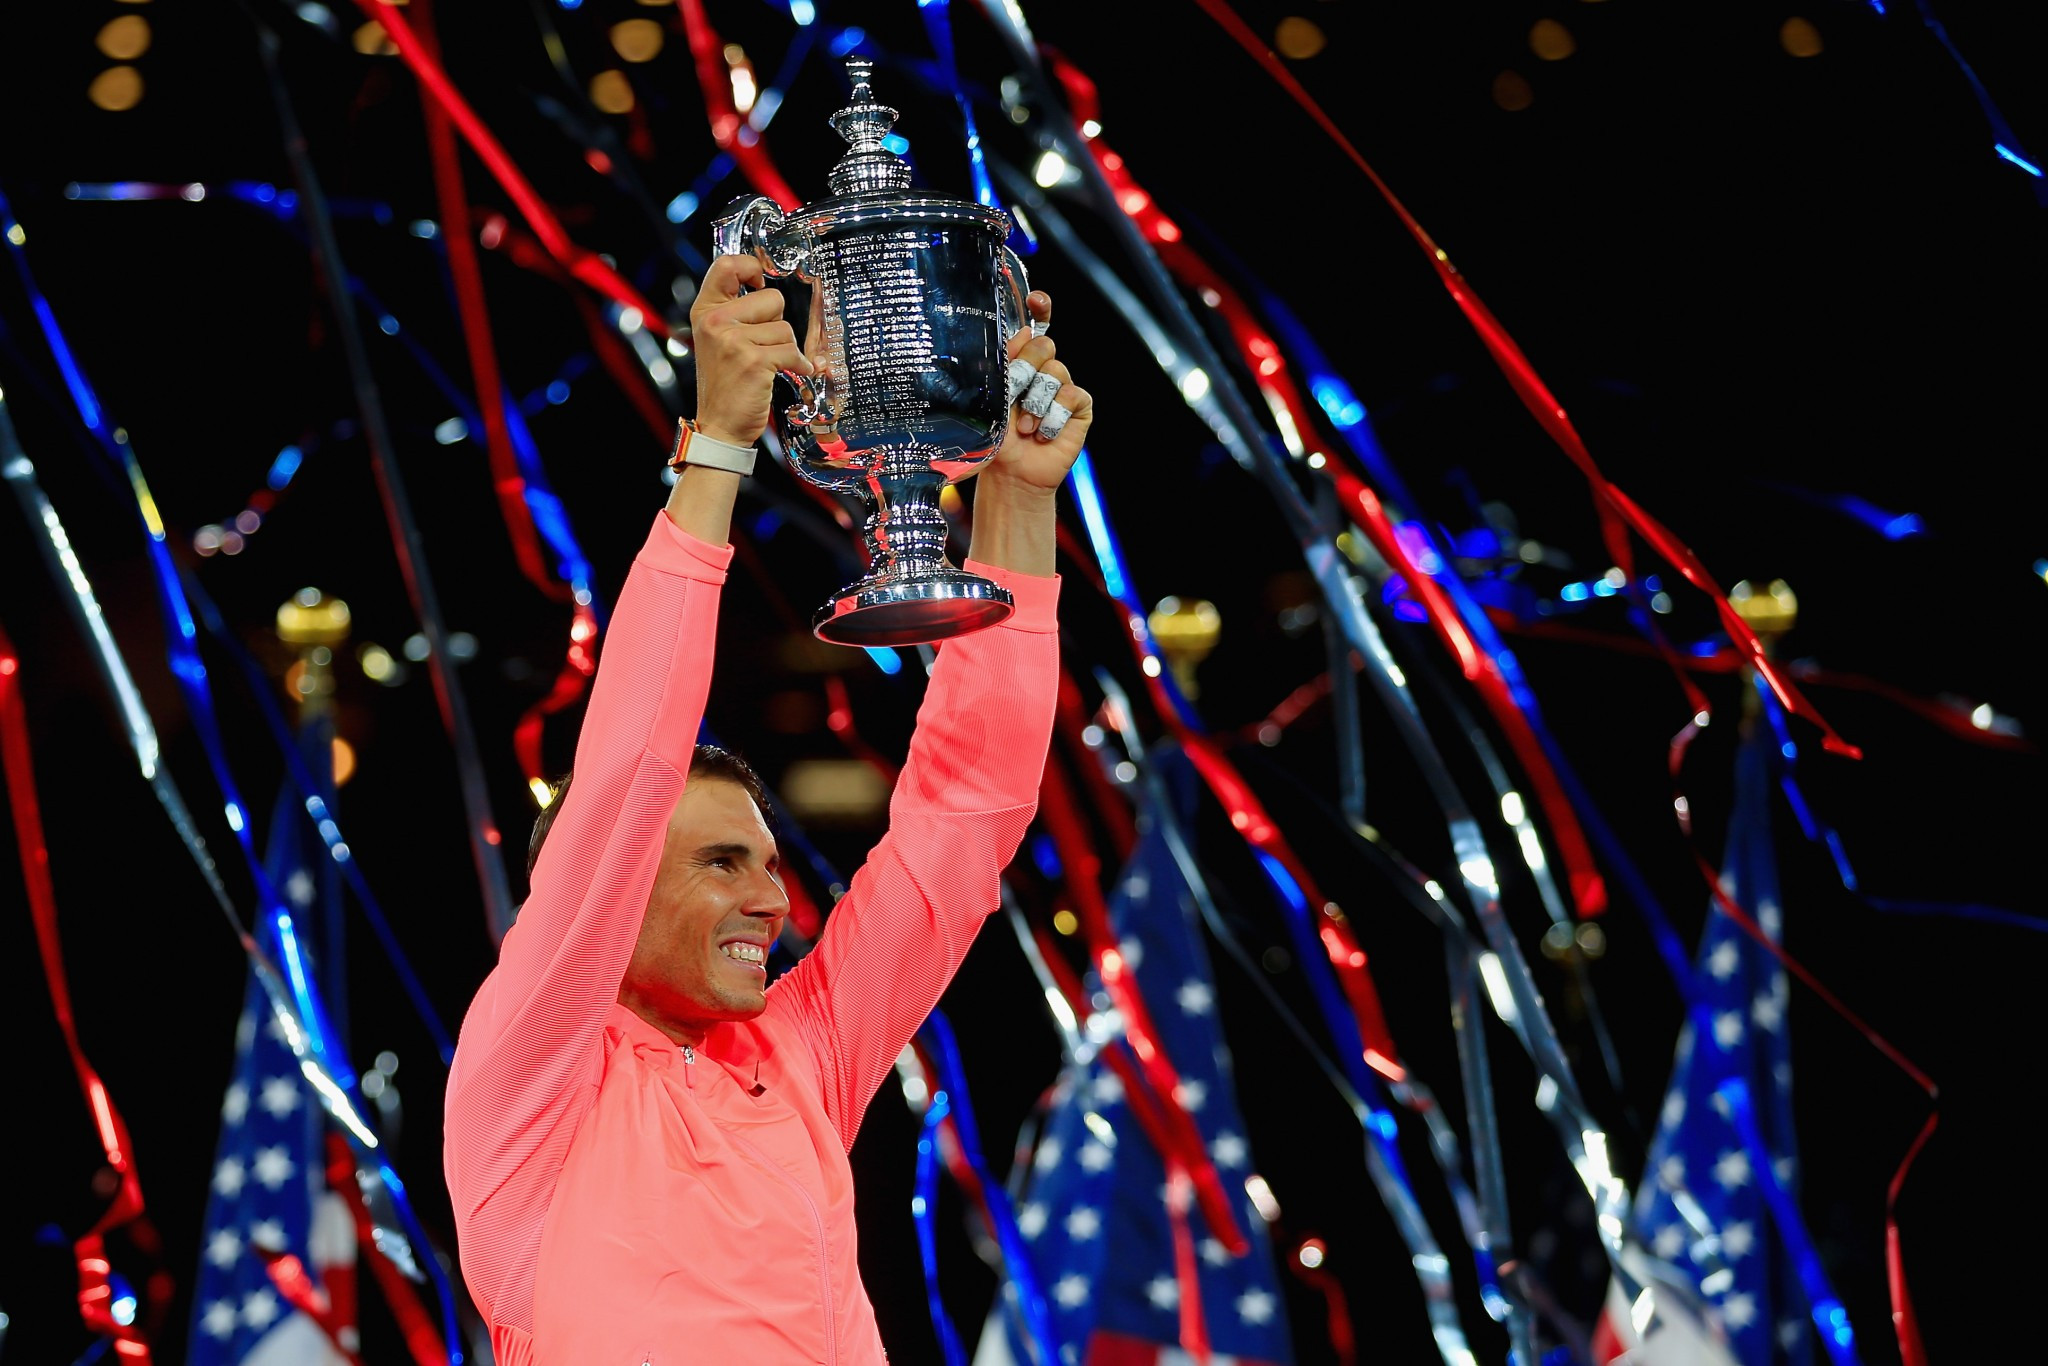 Rafael Nadal has won the men's singles final at the US Open ©Getty Images